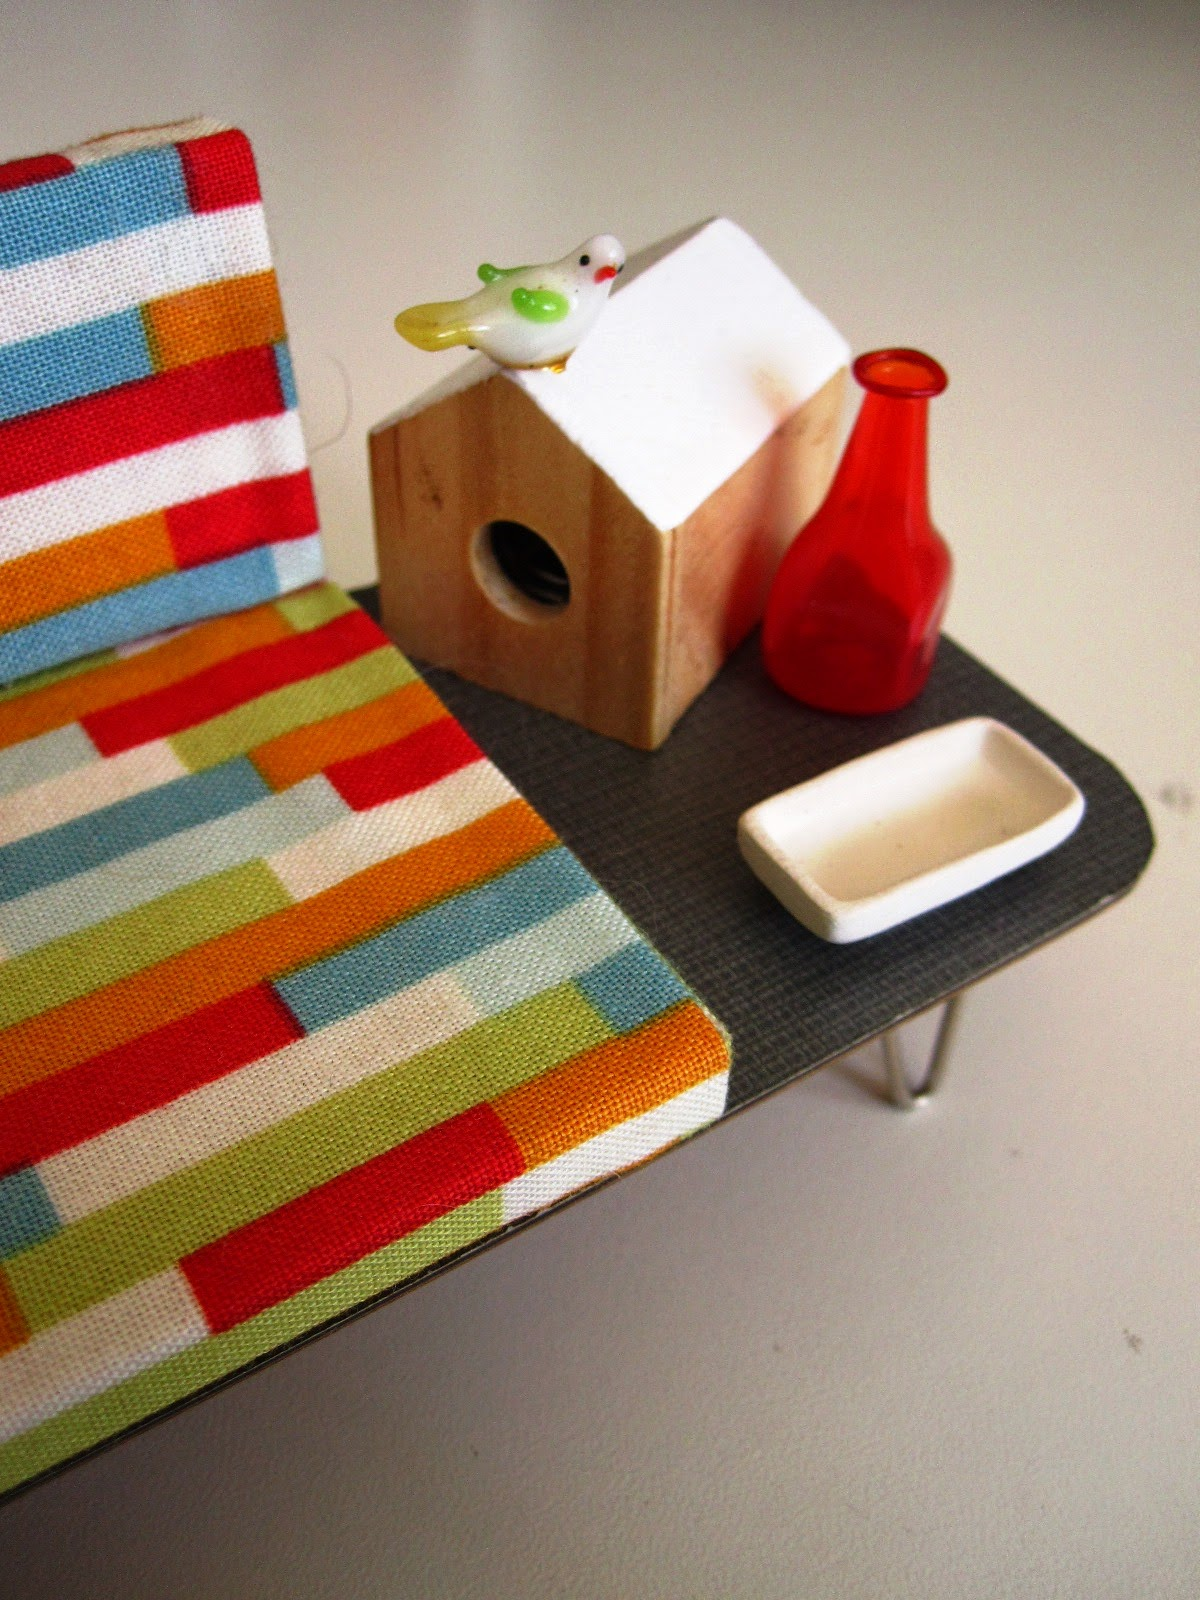 Mid century modern miniature sofa with attached coffee table, displaying mid century accessories including a bird house, bird, bottle and dish.